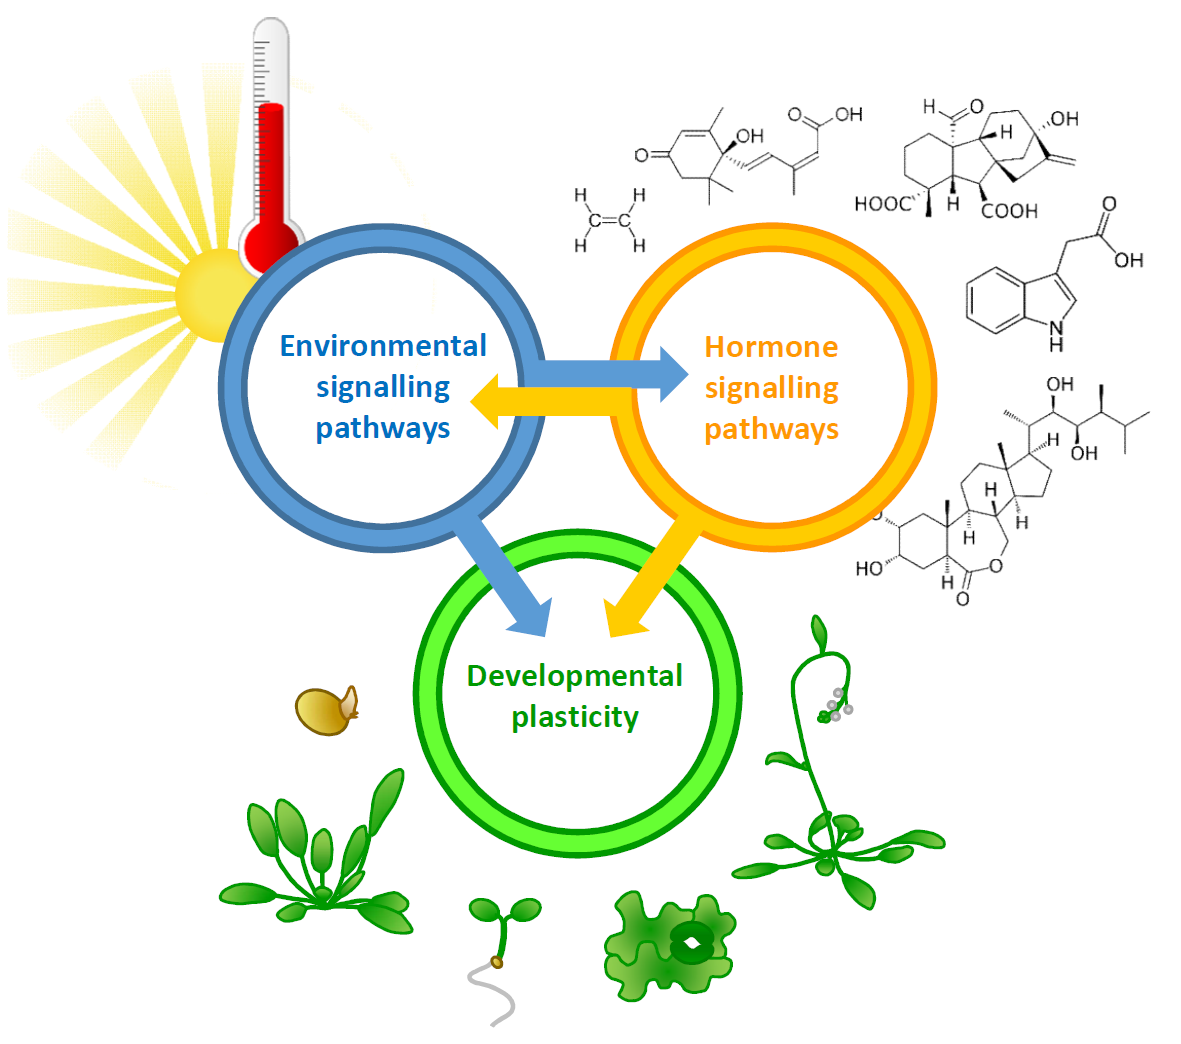 Dr Balcerowicz is investigating how environmental signals trigger endogenous processes in plants. Diagram by Martin Balcerowicz.